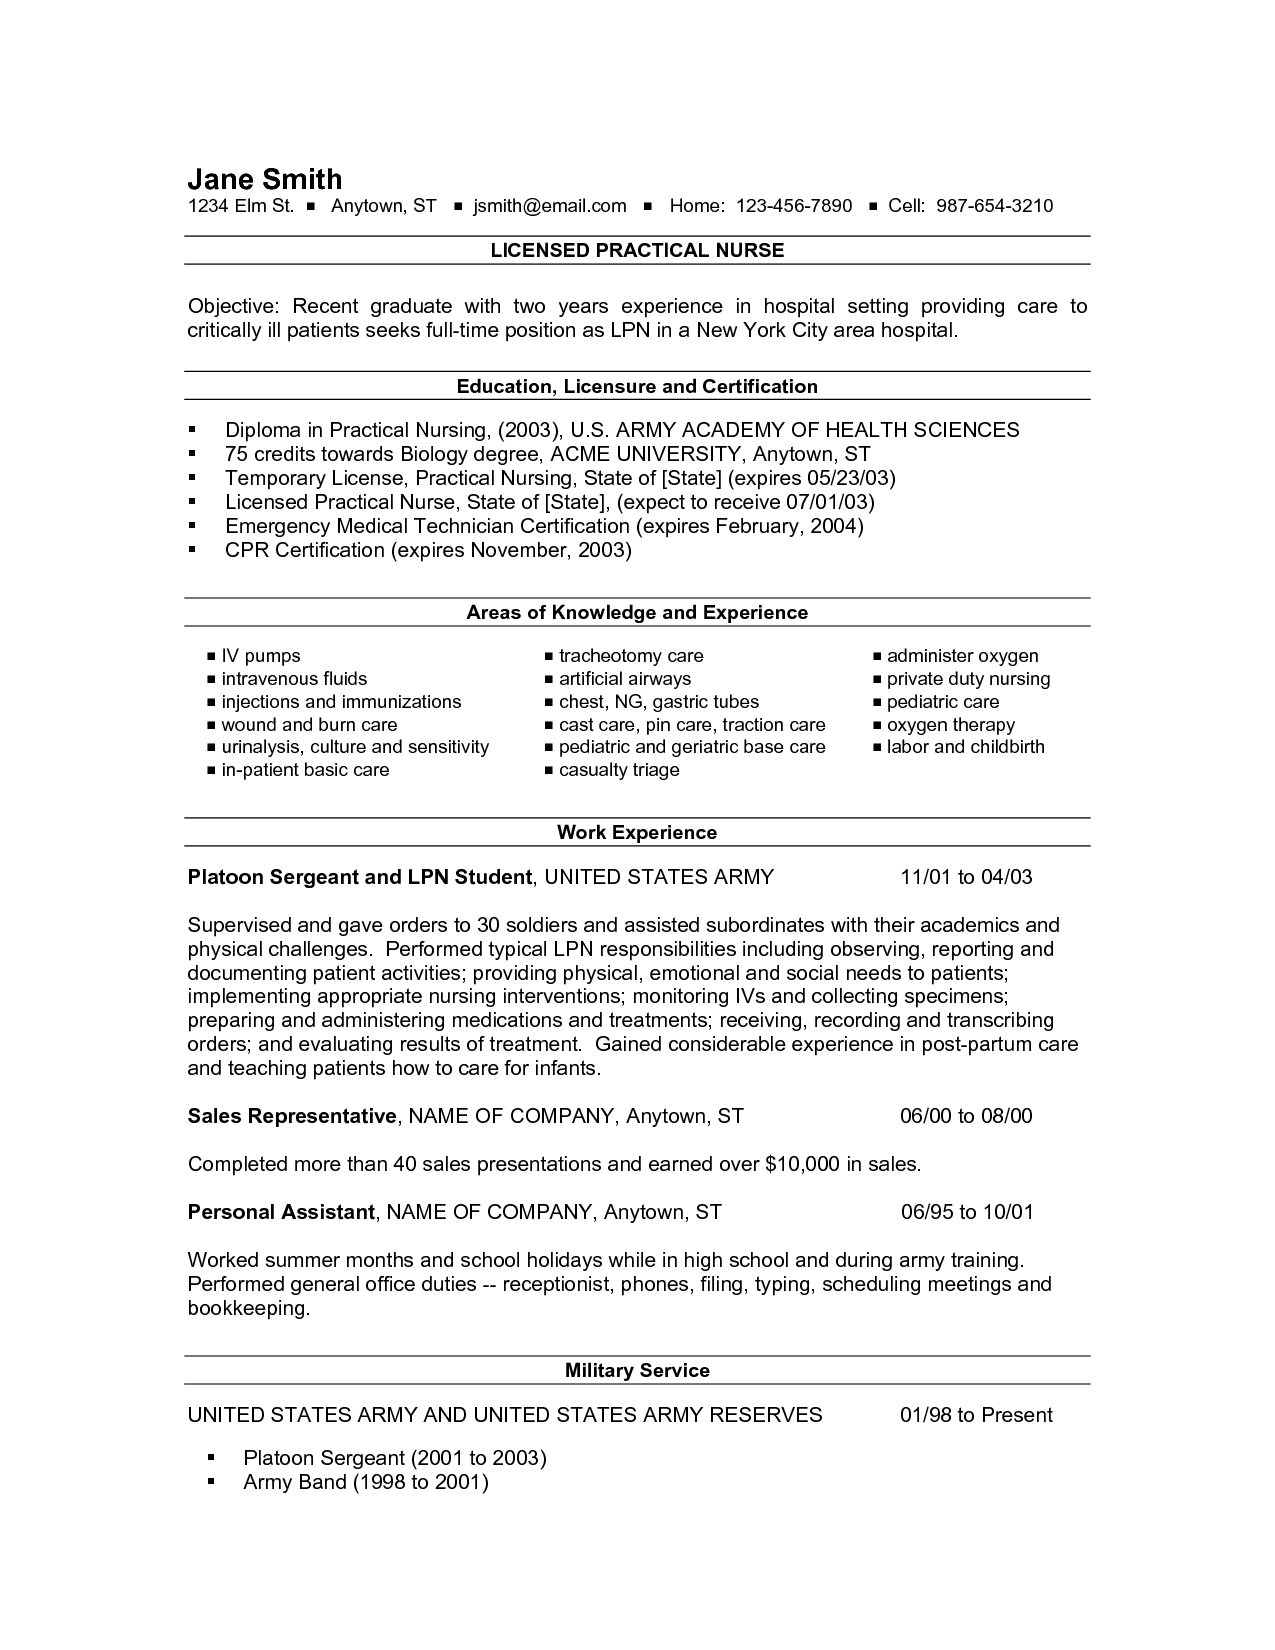 Home Health Care Nurse Resume Enchanting Hospital Nurse Resume Templates  Httpwww.resumecareer .